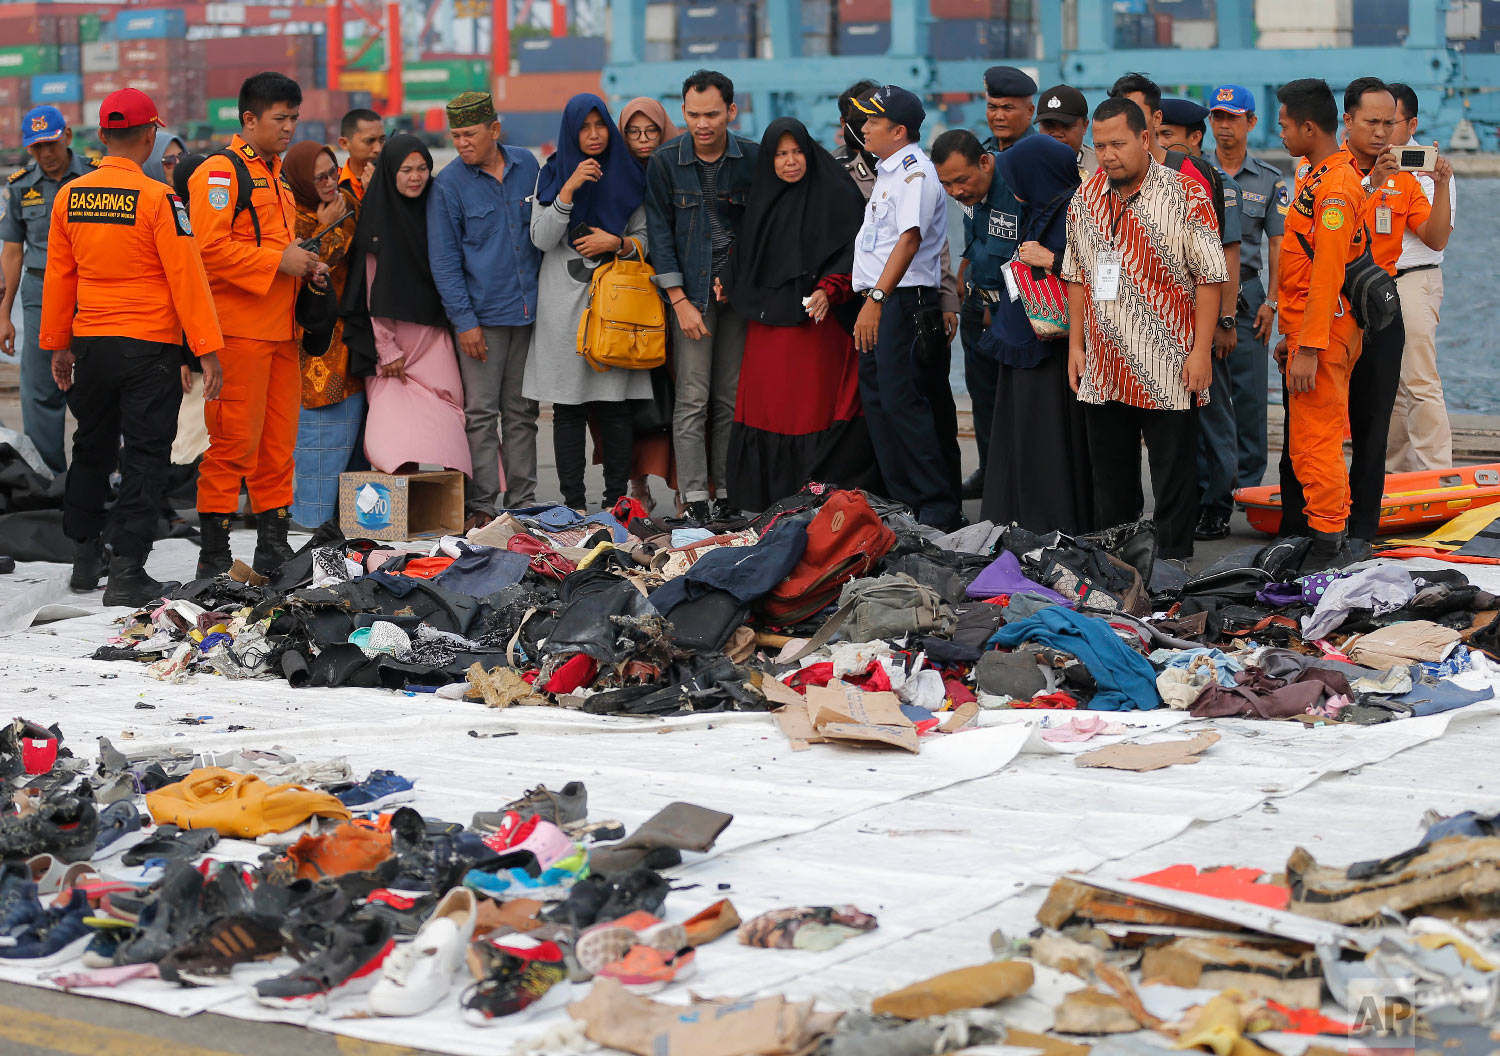 Relatives of passengers on the crashed Lion Air jet check personal belongings retrieved from the waters where the airplane is believed to have crashed, at Tanjung Priok Port in Jakarta, Indonesia, on Oct. 31, 2018. (AP Photo/Tatan Syuflana)